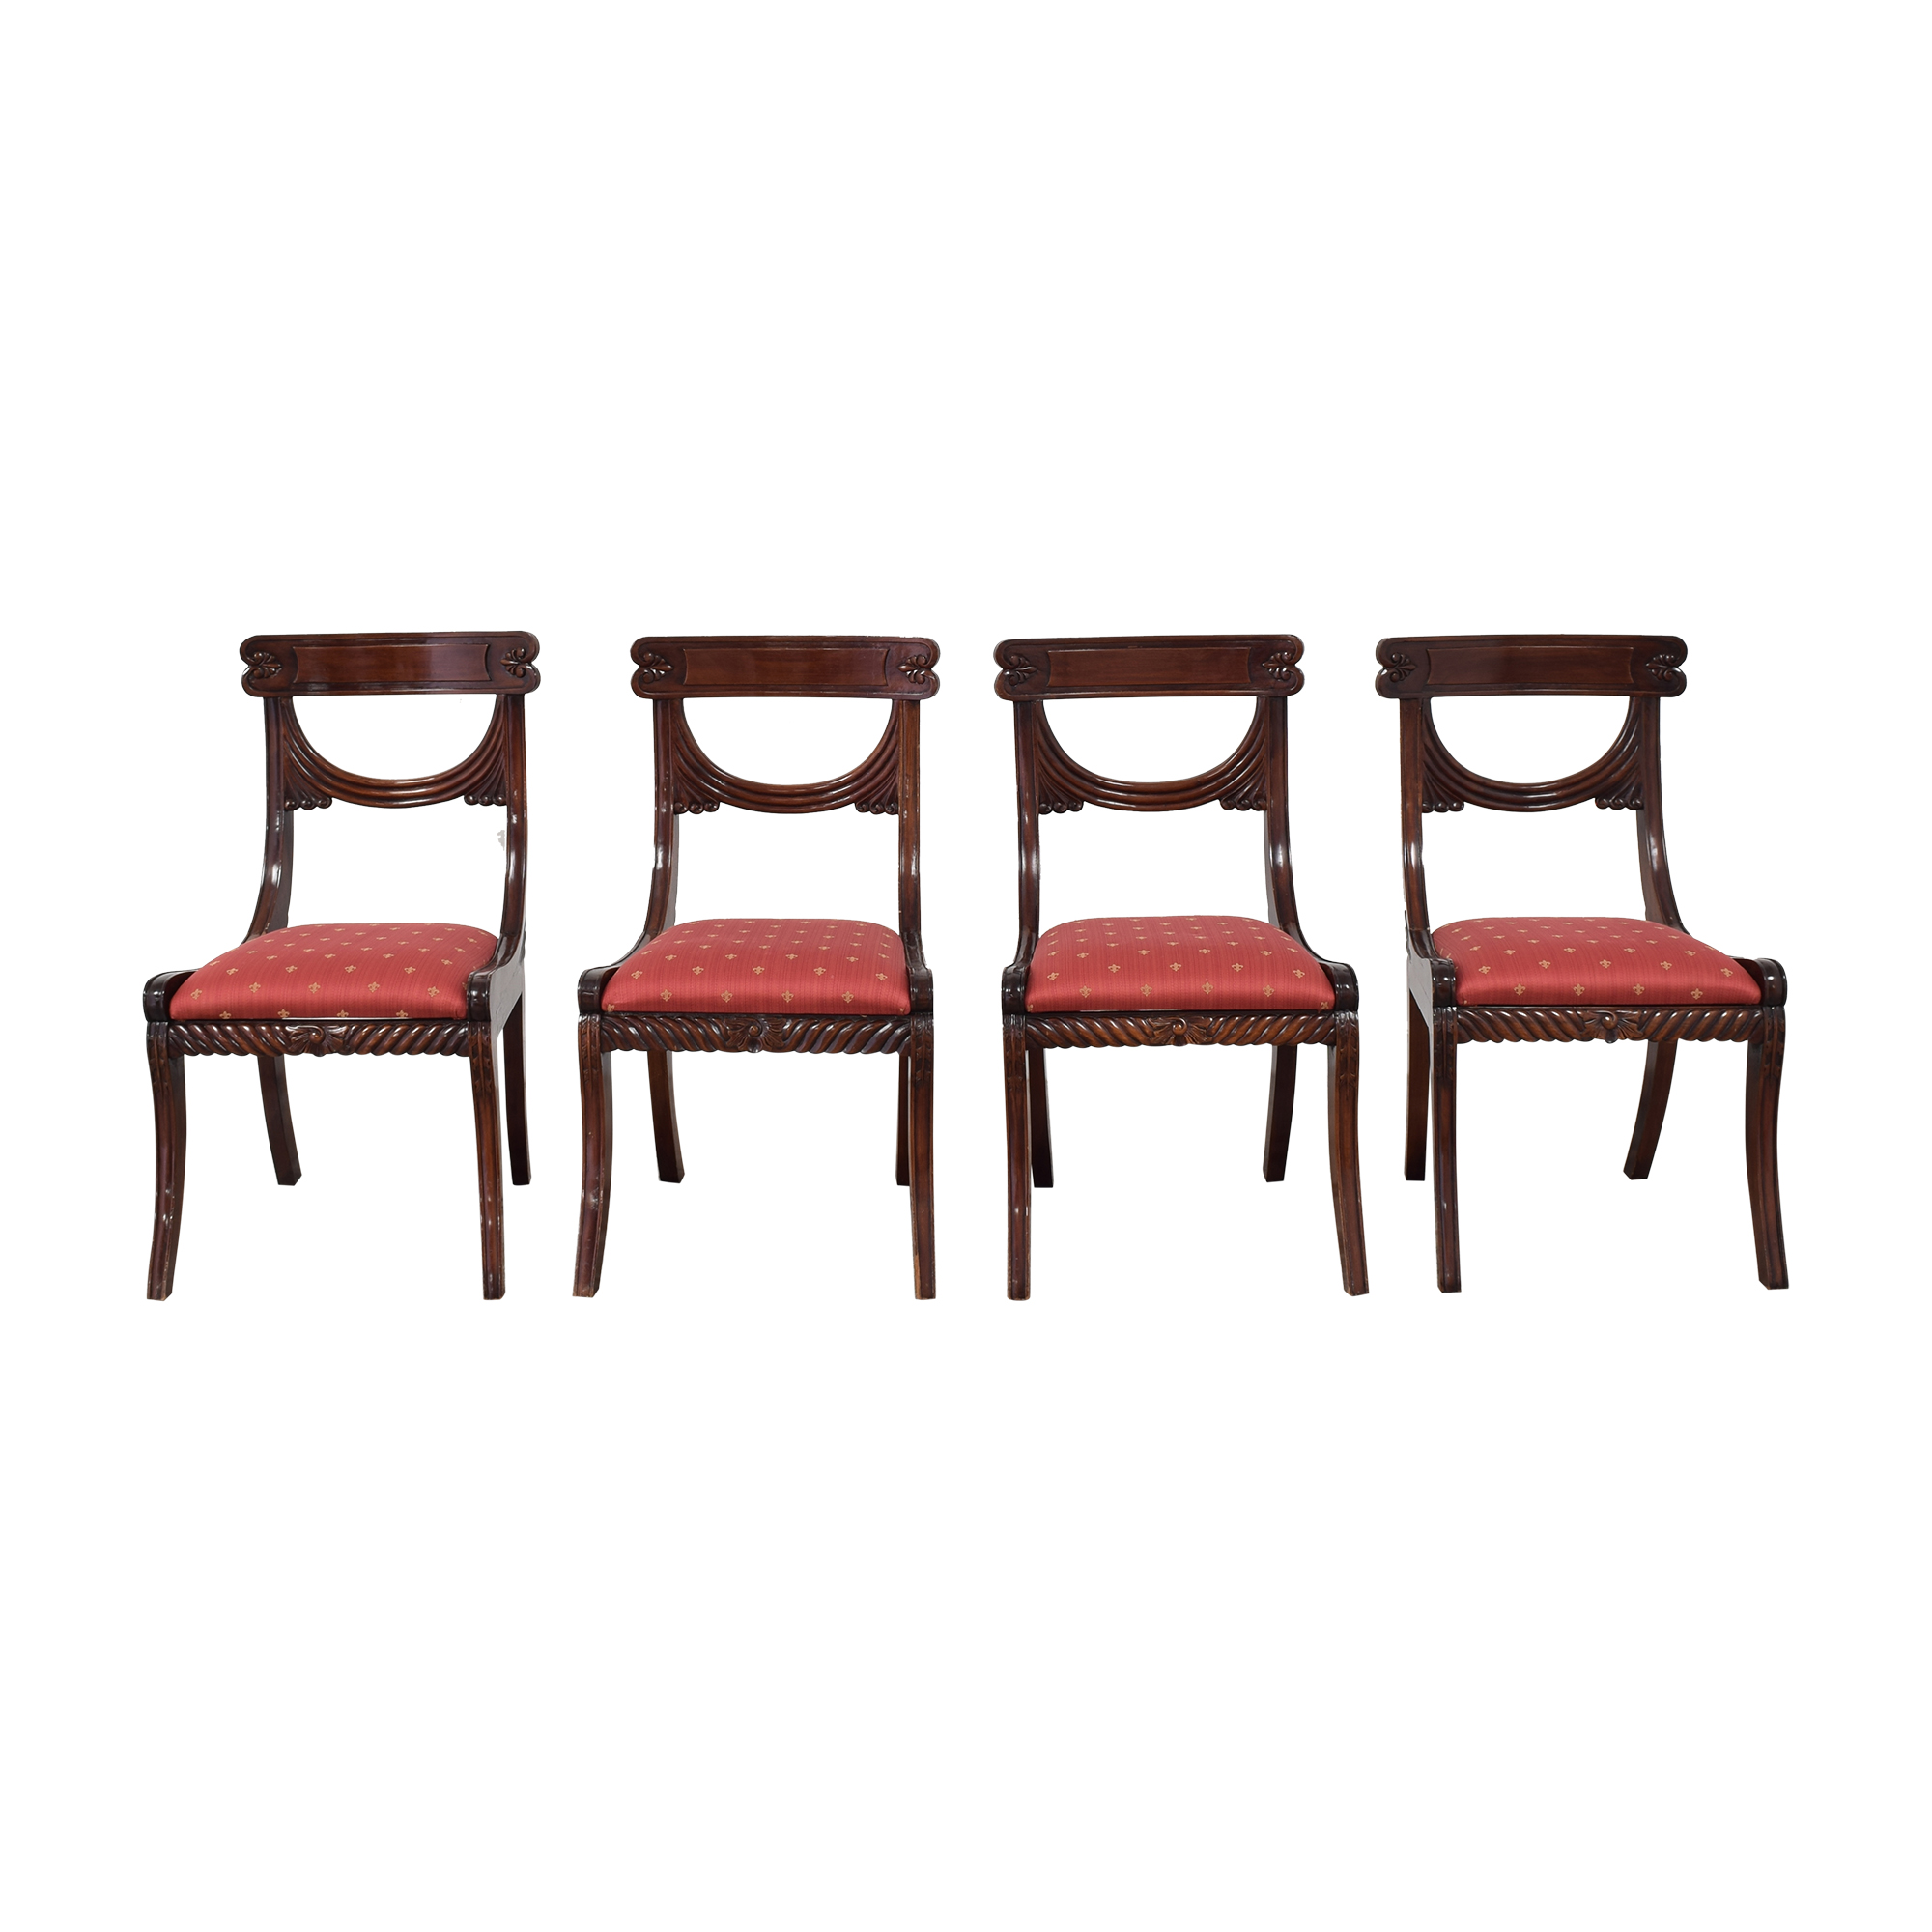 Rose Tarlow Rose Tarlow Upholstered Dining Chairs brown & red